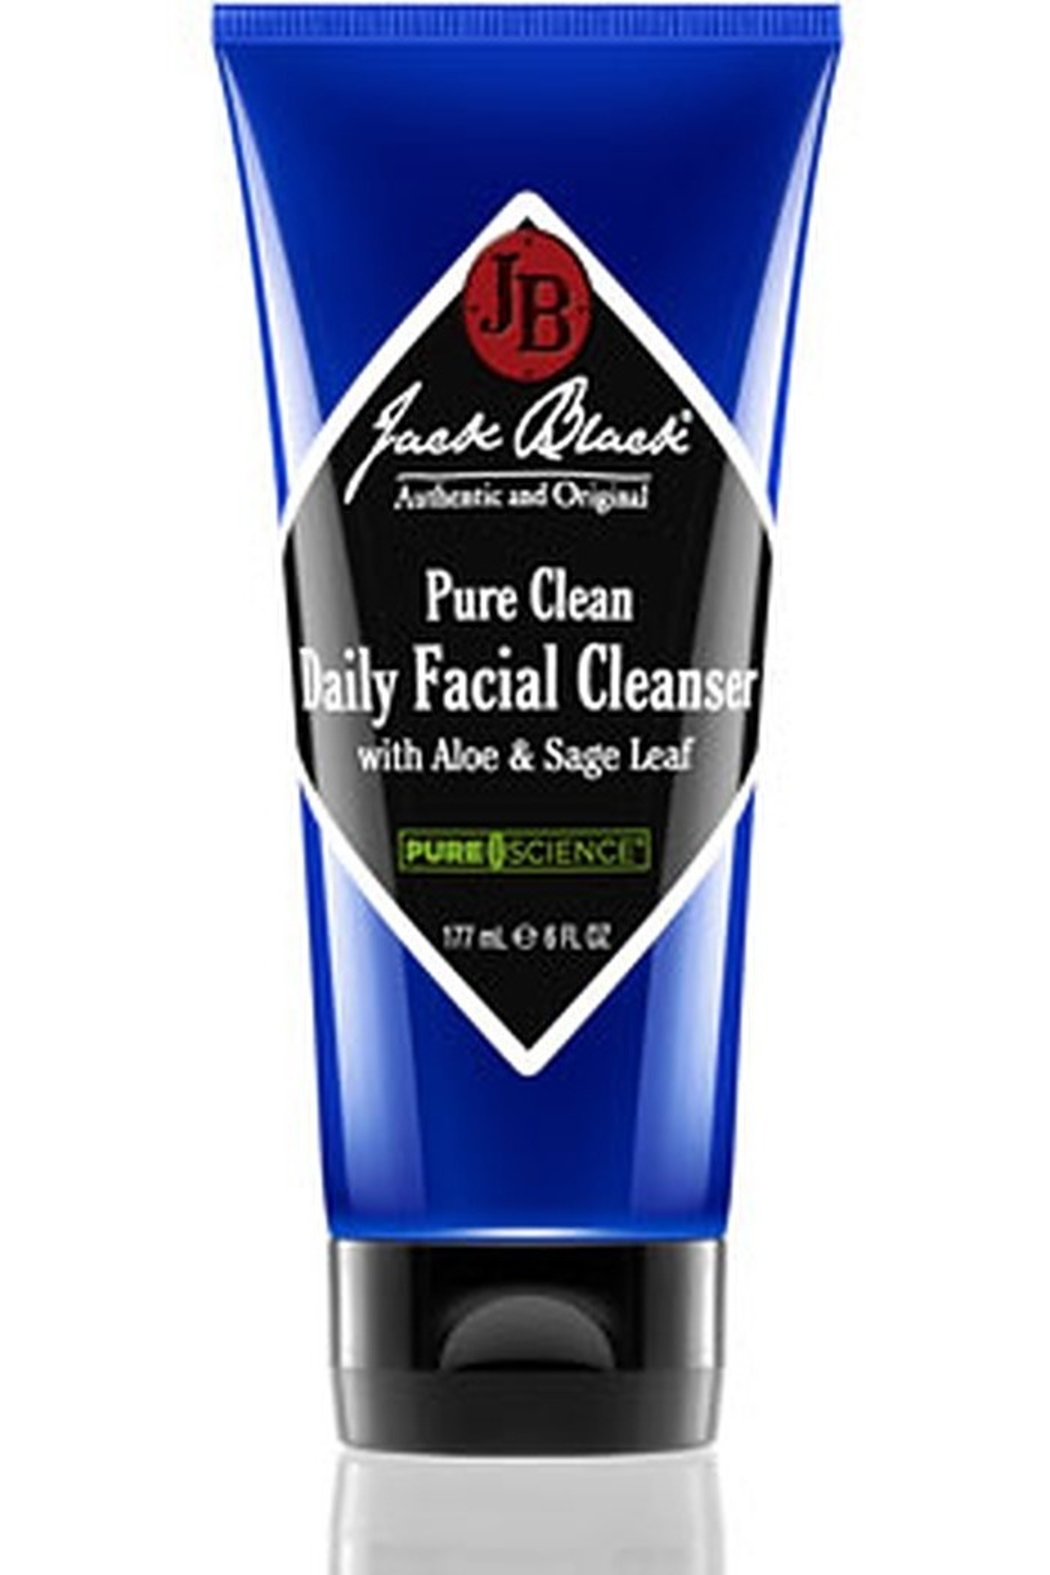 Jack Black Pure Clean Daily Facial Cleanser with Aloe & Sage Leaf - Main Image